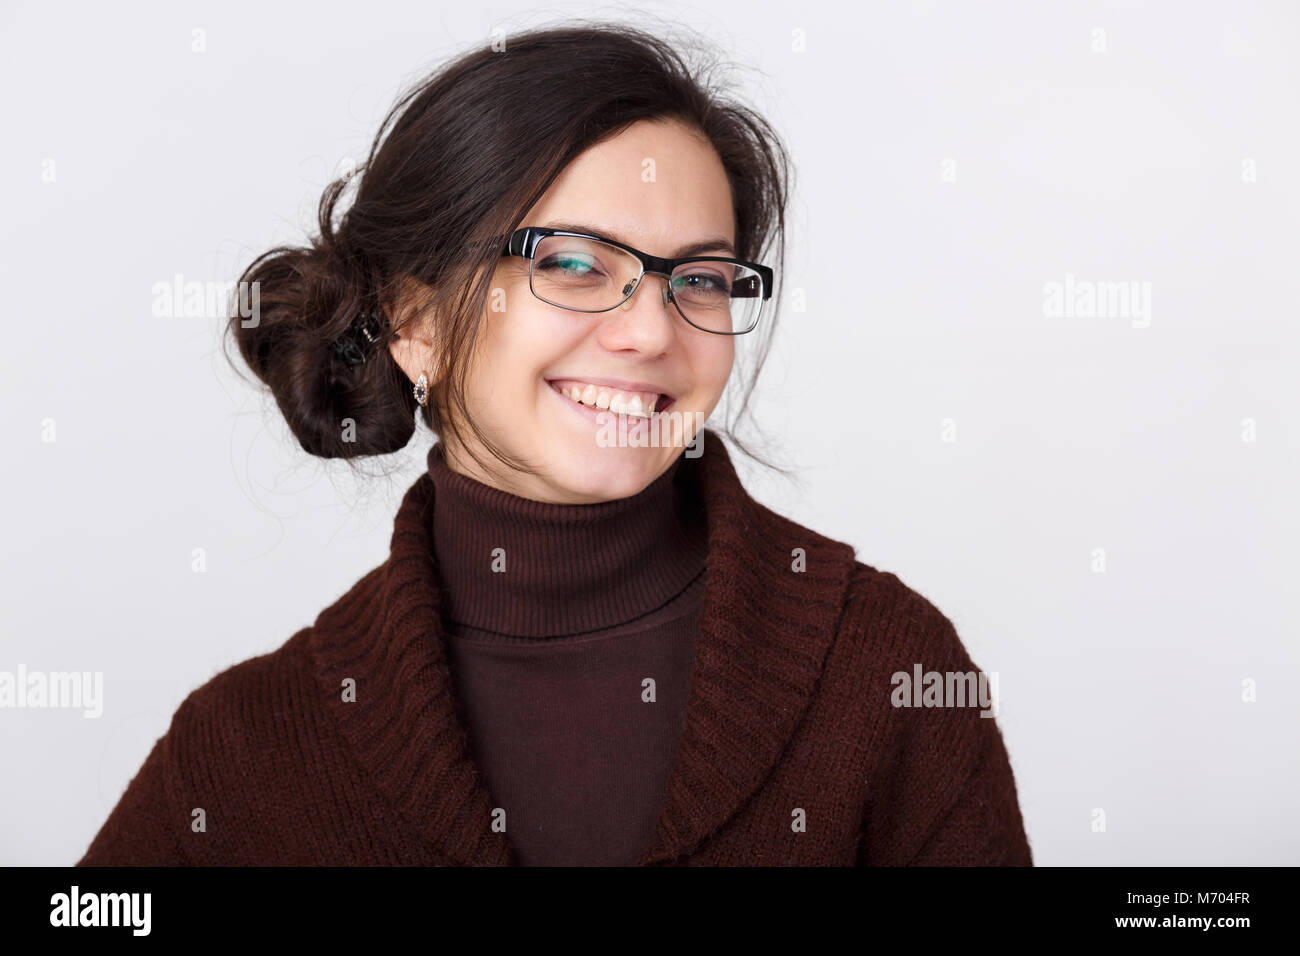 smiling young woman with glasses - Stock Image